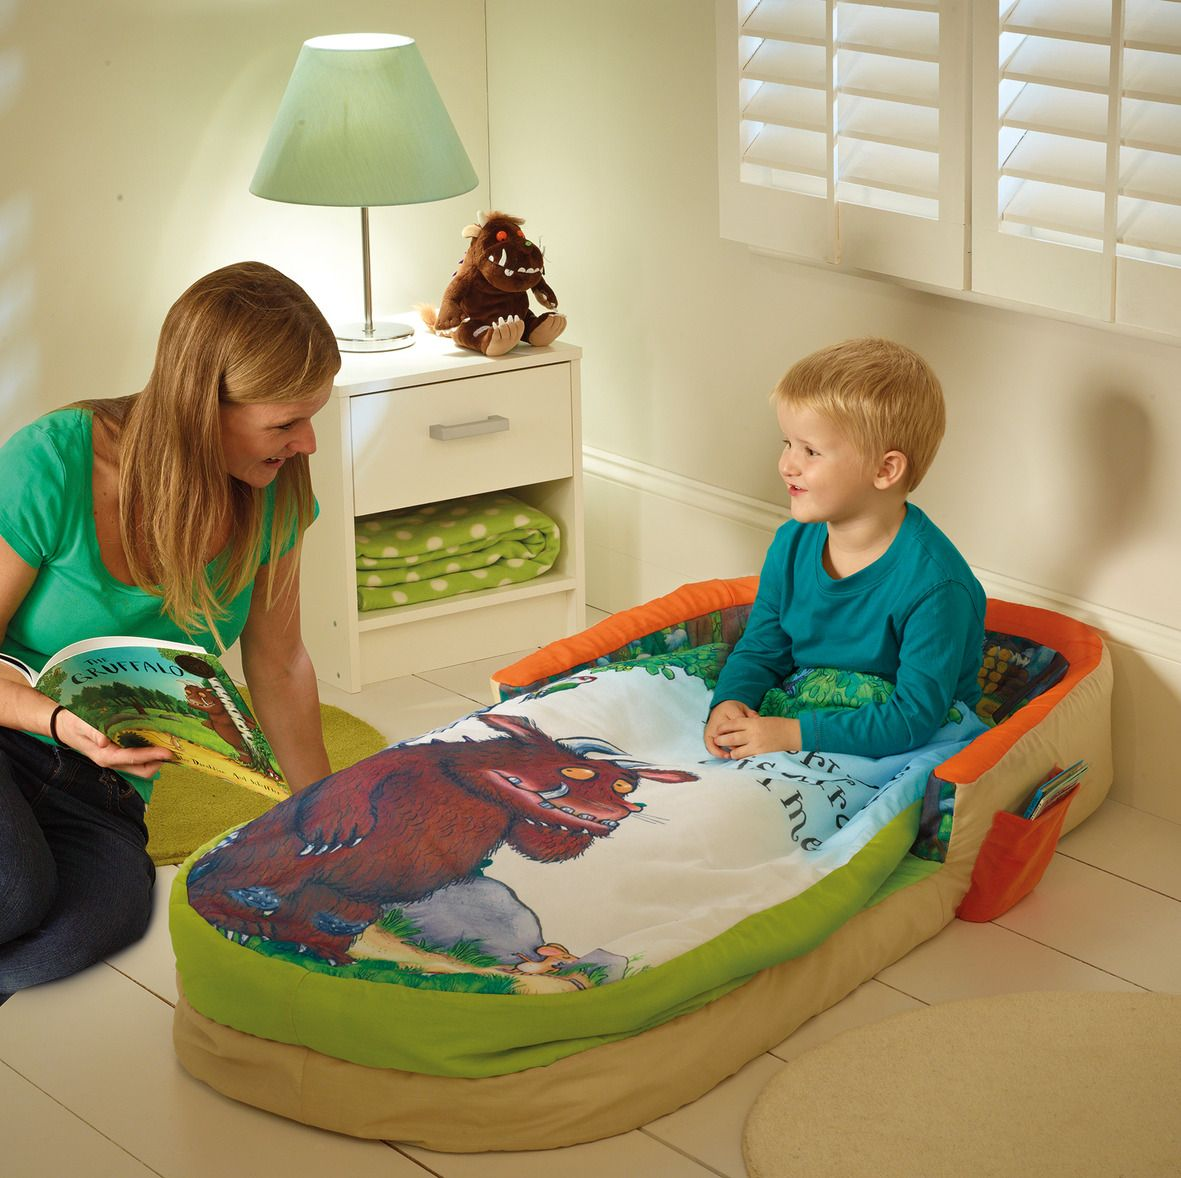 Settle in, snuggle down and slumber – The Gruffalo My First ReadyBed is the ideal transition from a travel cot, offering comfort and security for your little one at night time.